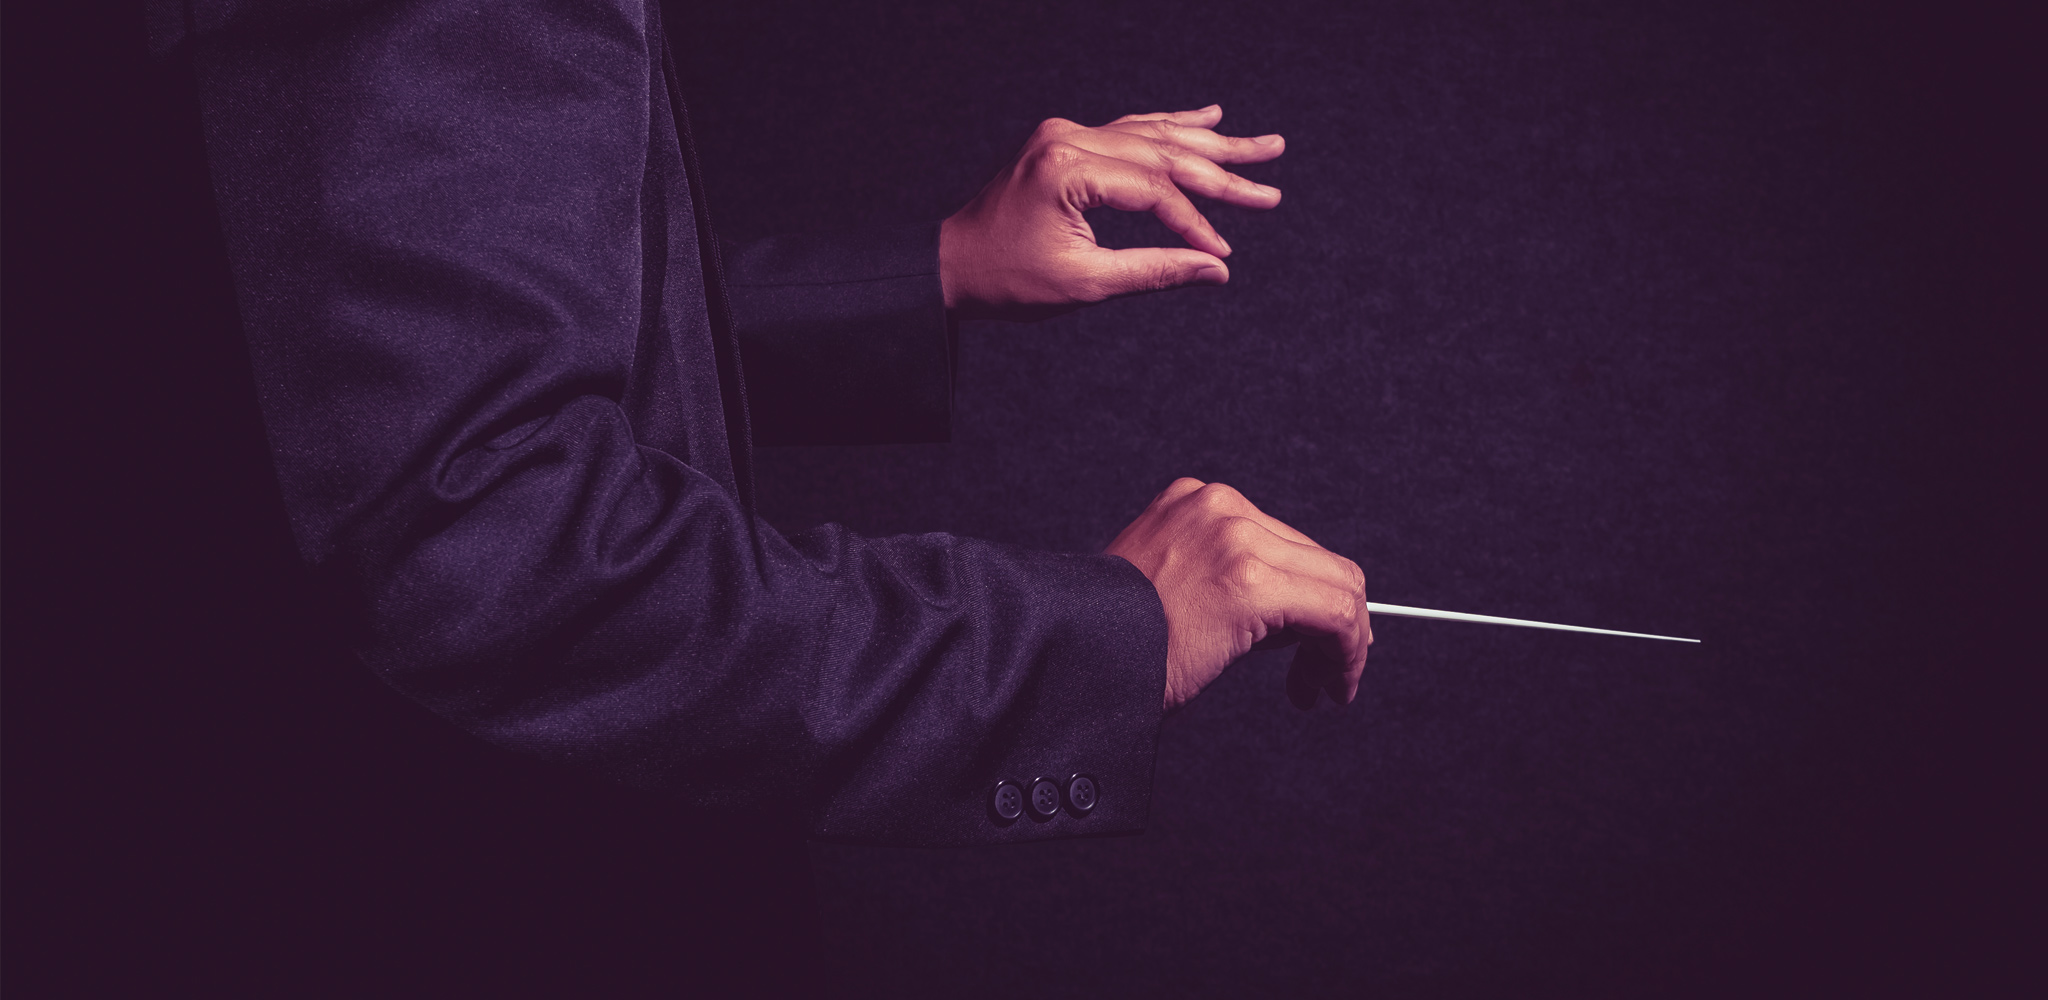 A dark image of an orchestra conductor's hands